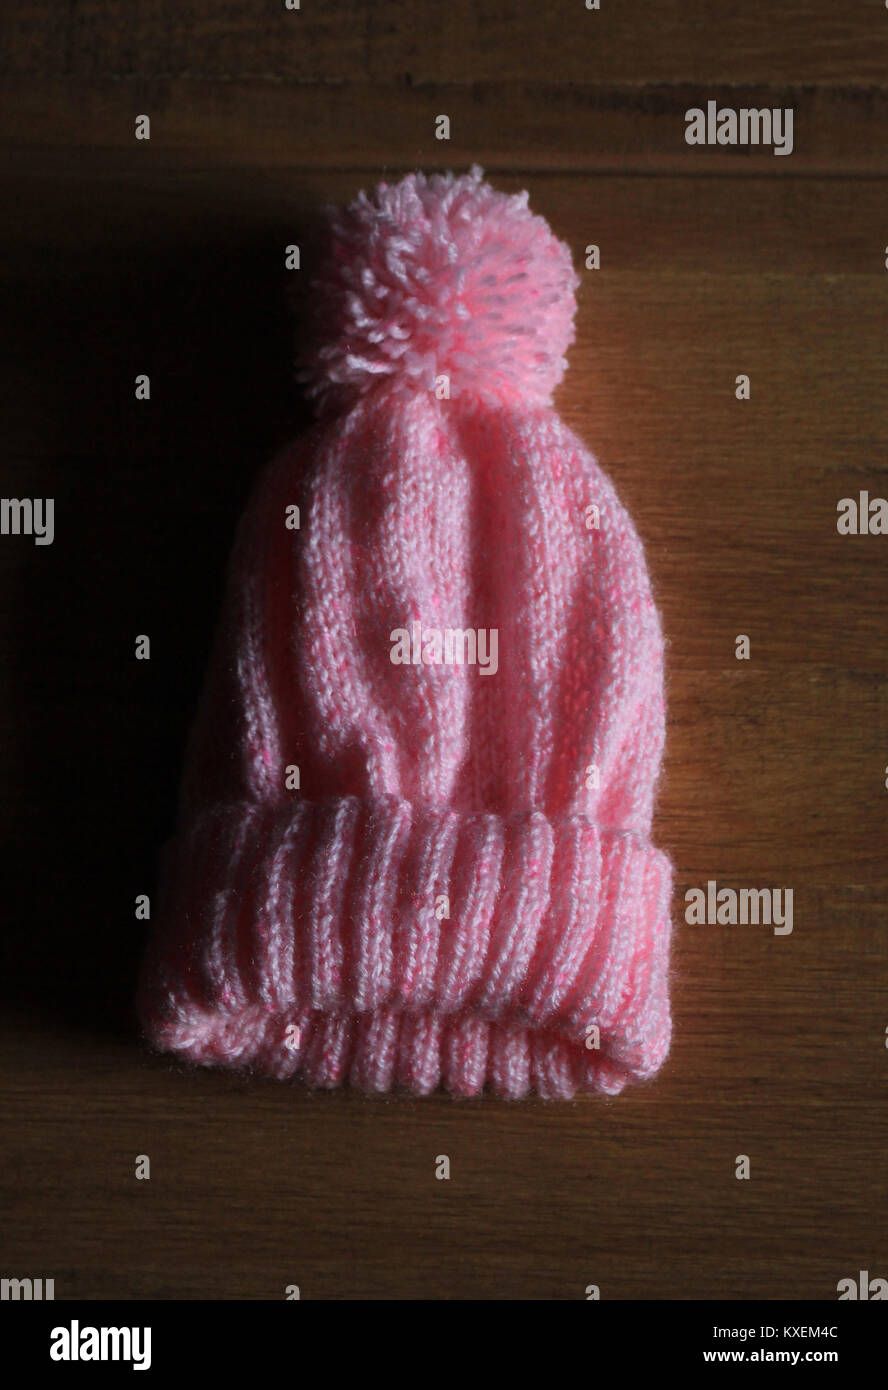 A Pink Baby's Bobble Hat hand knitted by Carole Wareing displayed on a dark background with the light coming in - Stock Image